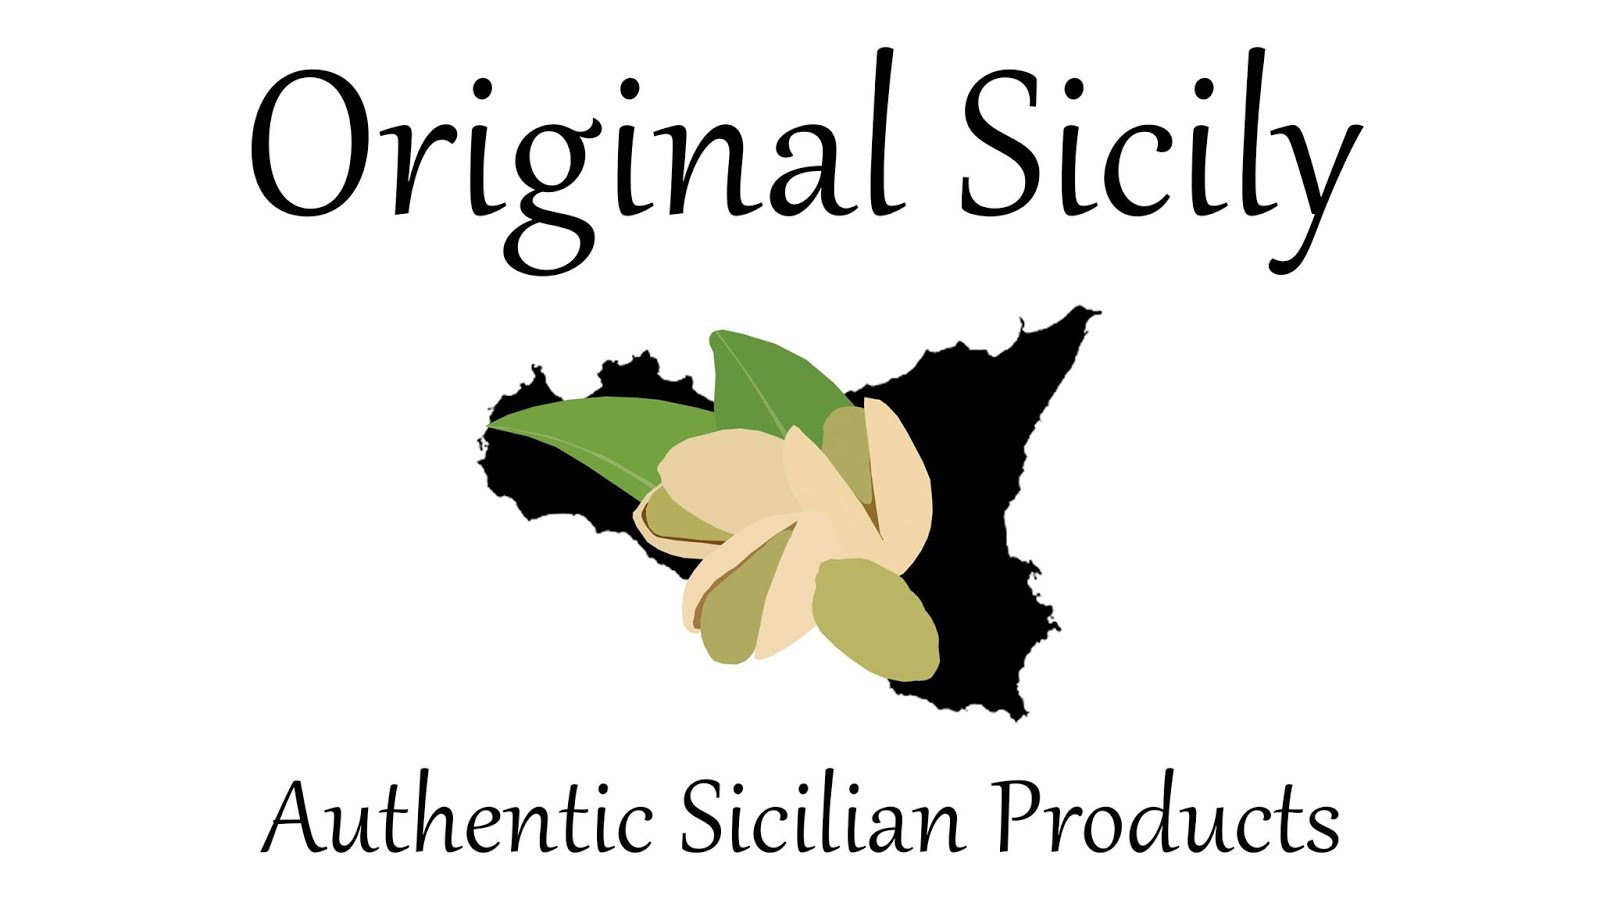 10% off at Original Sicily